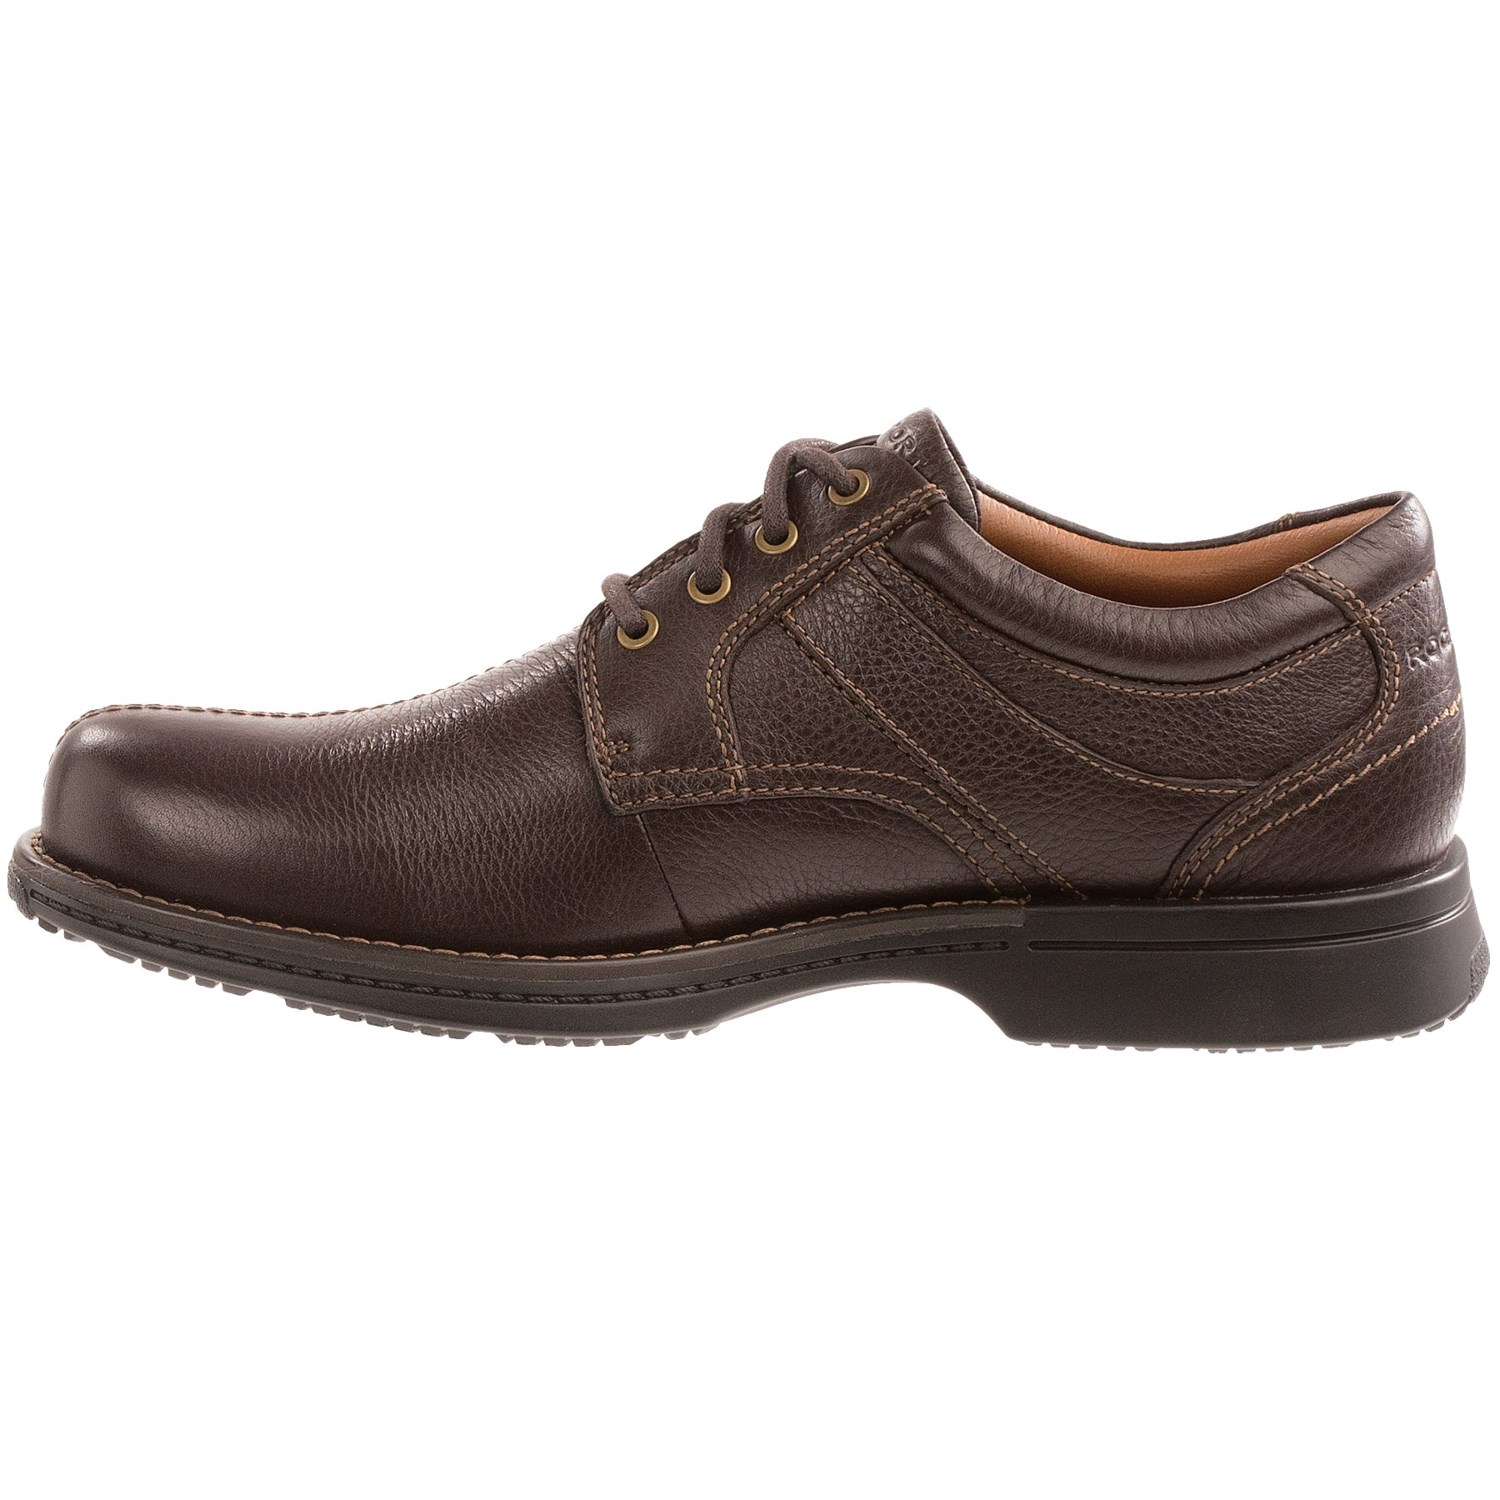 Information about rockport rvsd center seam shoes for men